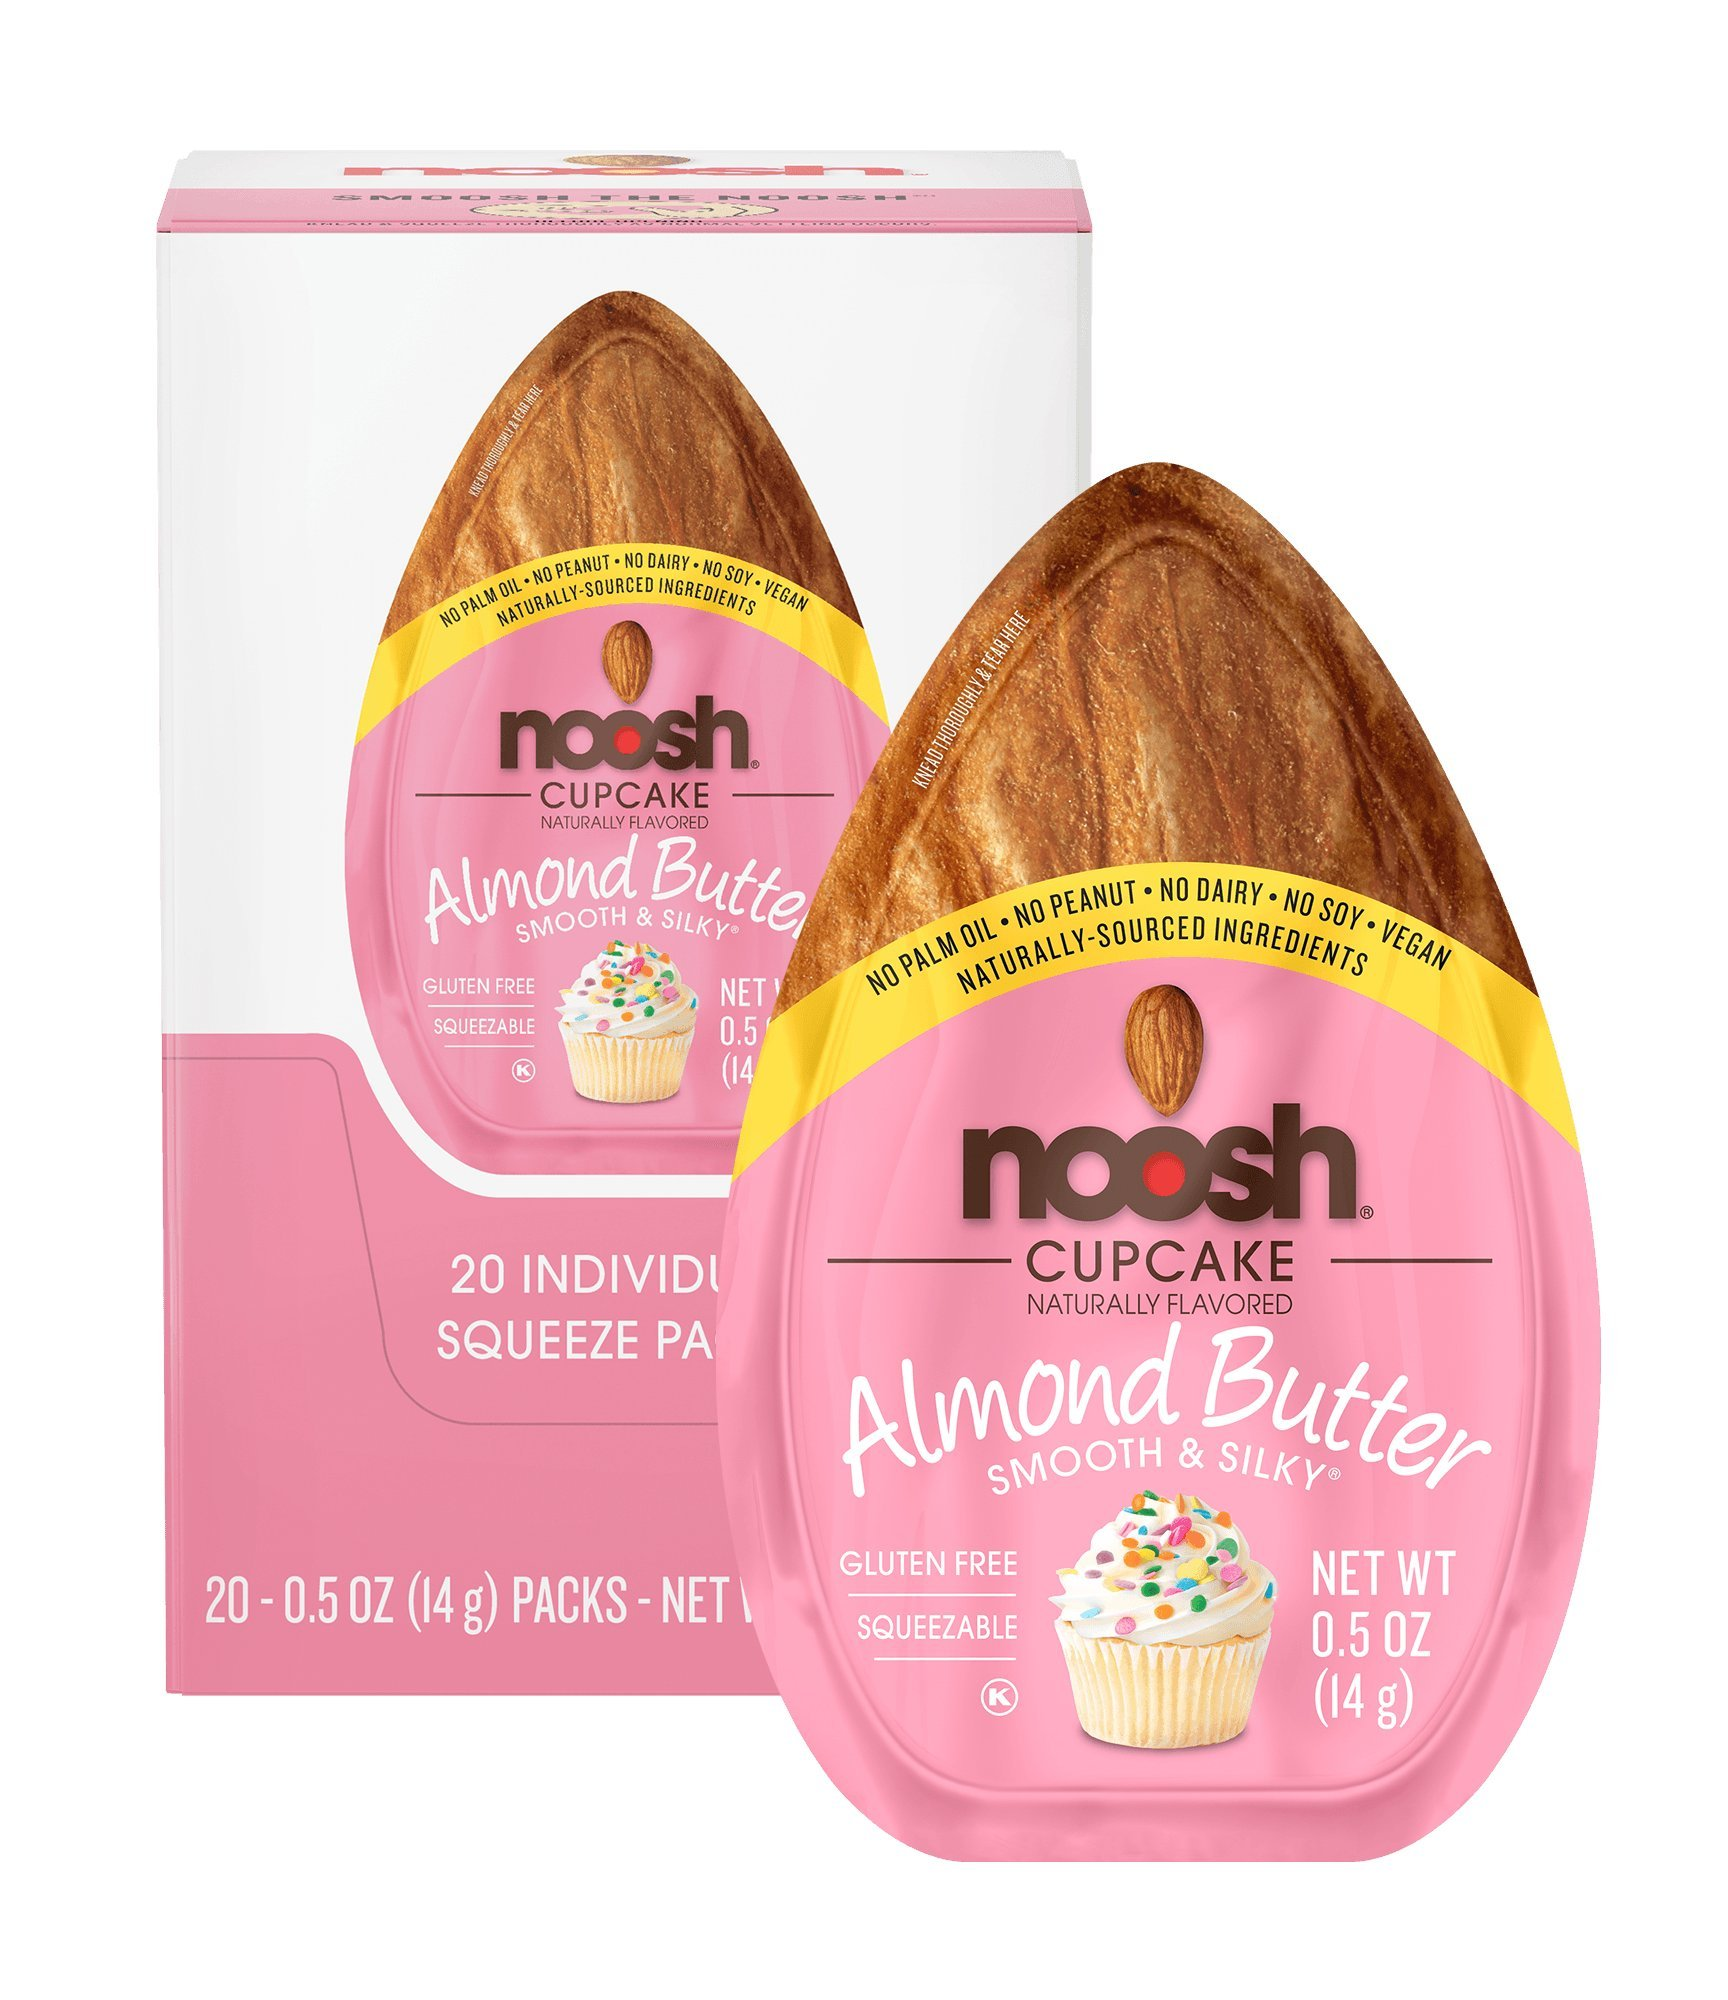 NOOSH Almond Butter Cupcake Packets (20 Count) - All Natural, Vegan, Gluten Free, Soy Free, Dairy Free, Non GMO. by NOOSH